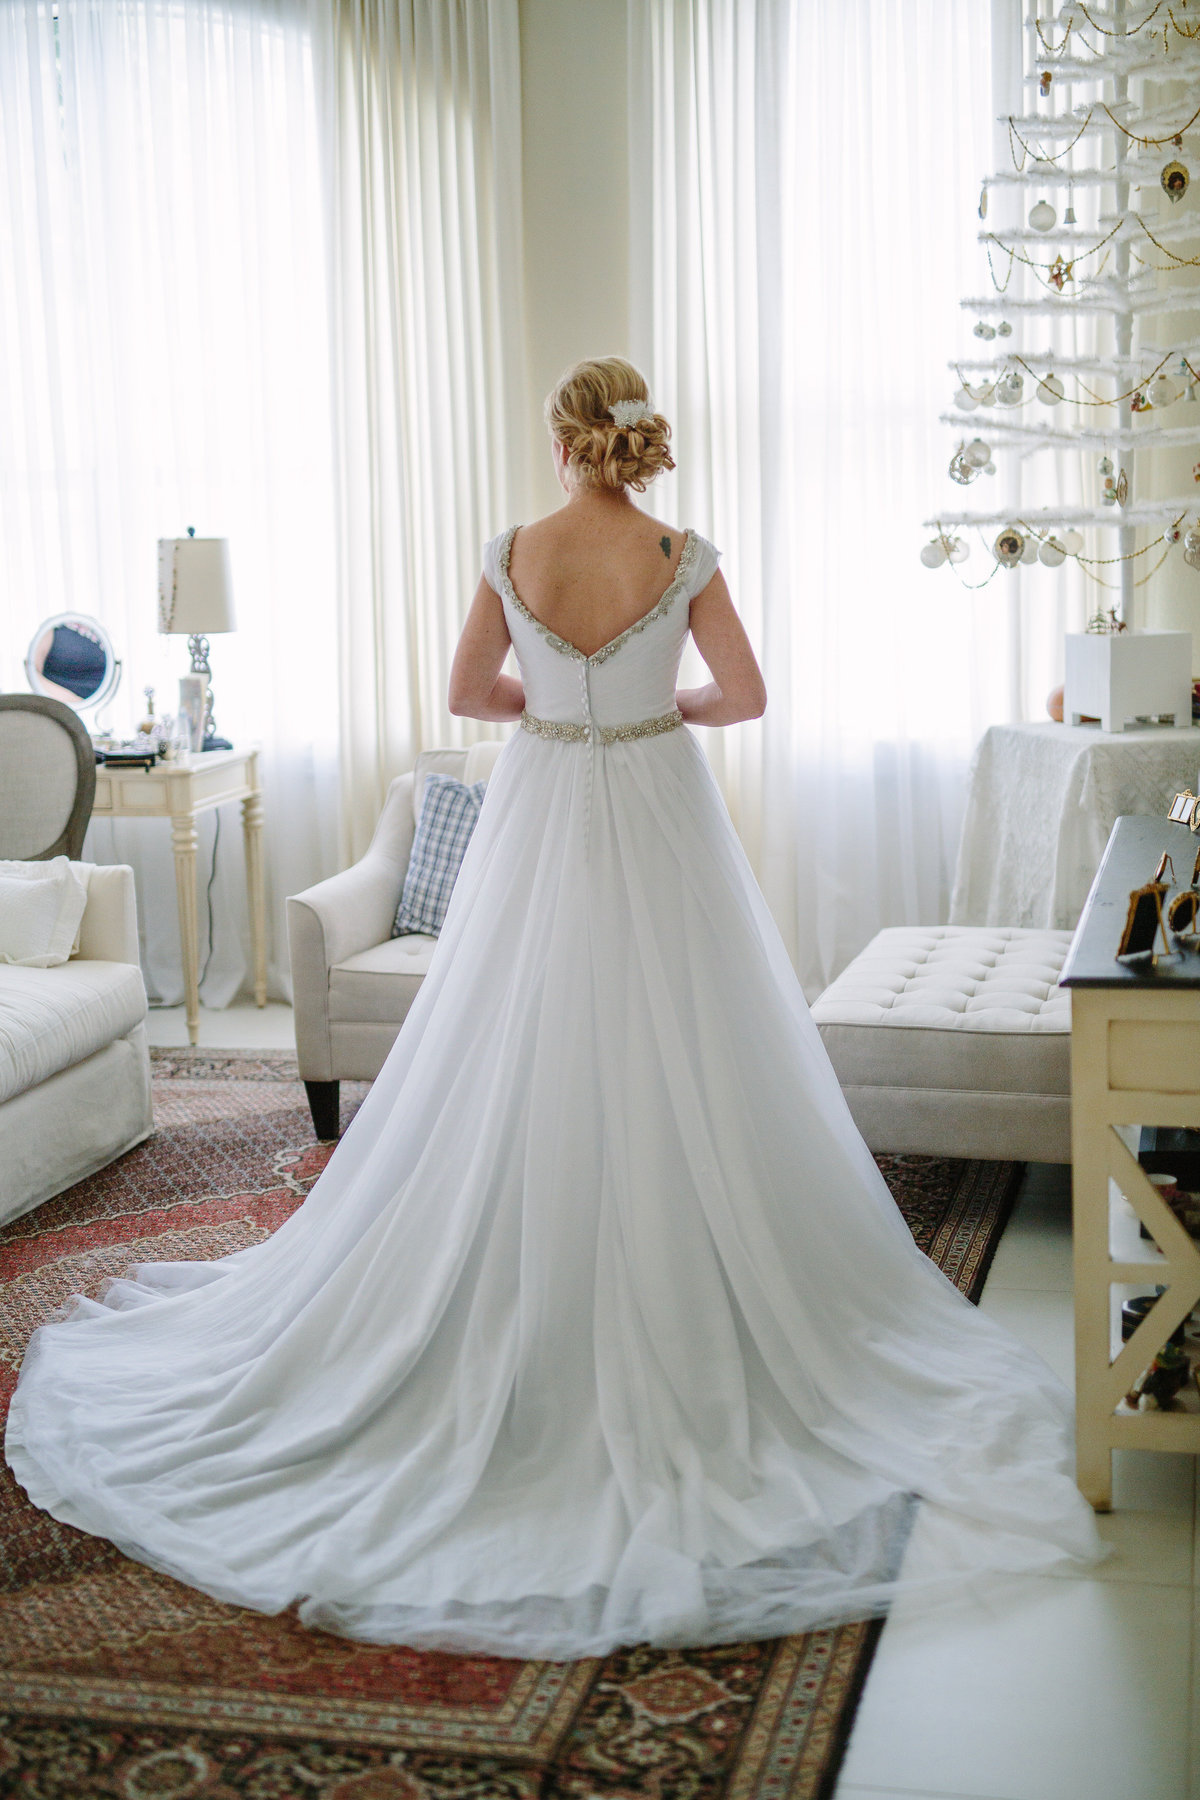 Back view of brides wedding gown after getting dressed for wedding ceremony.